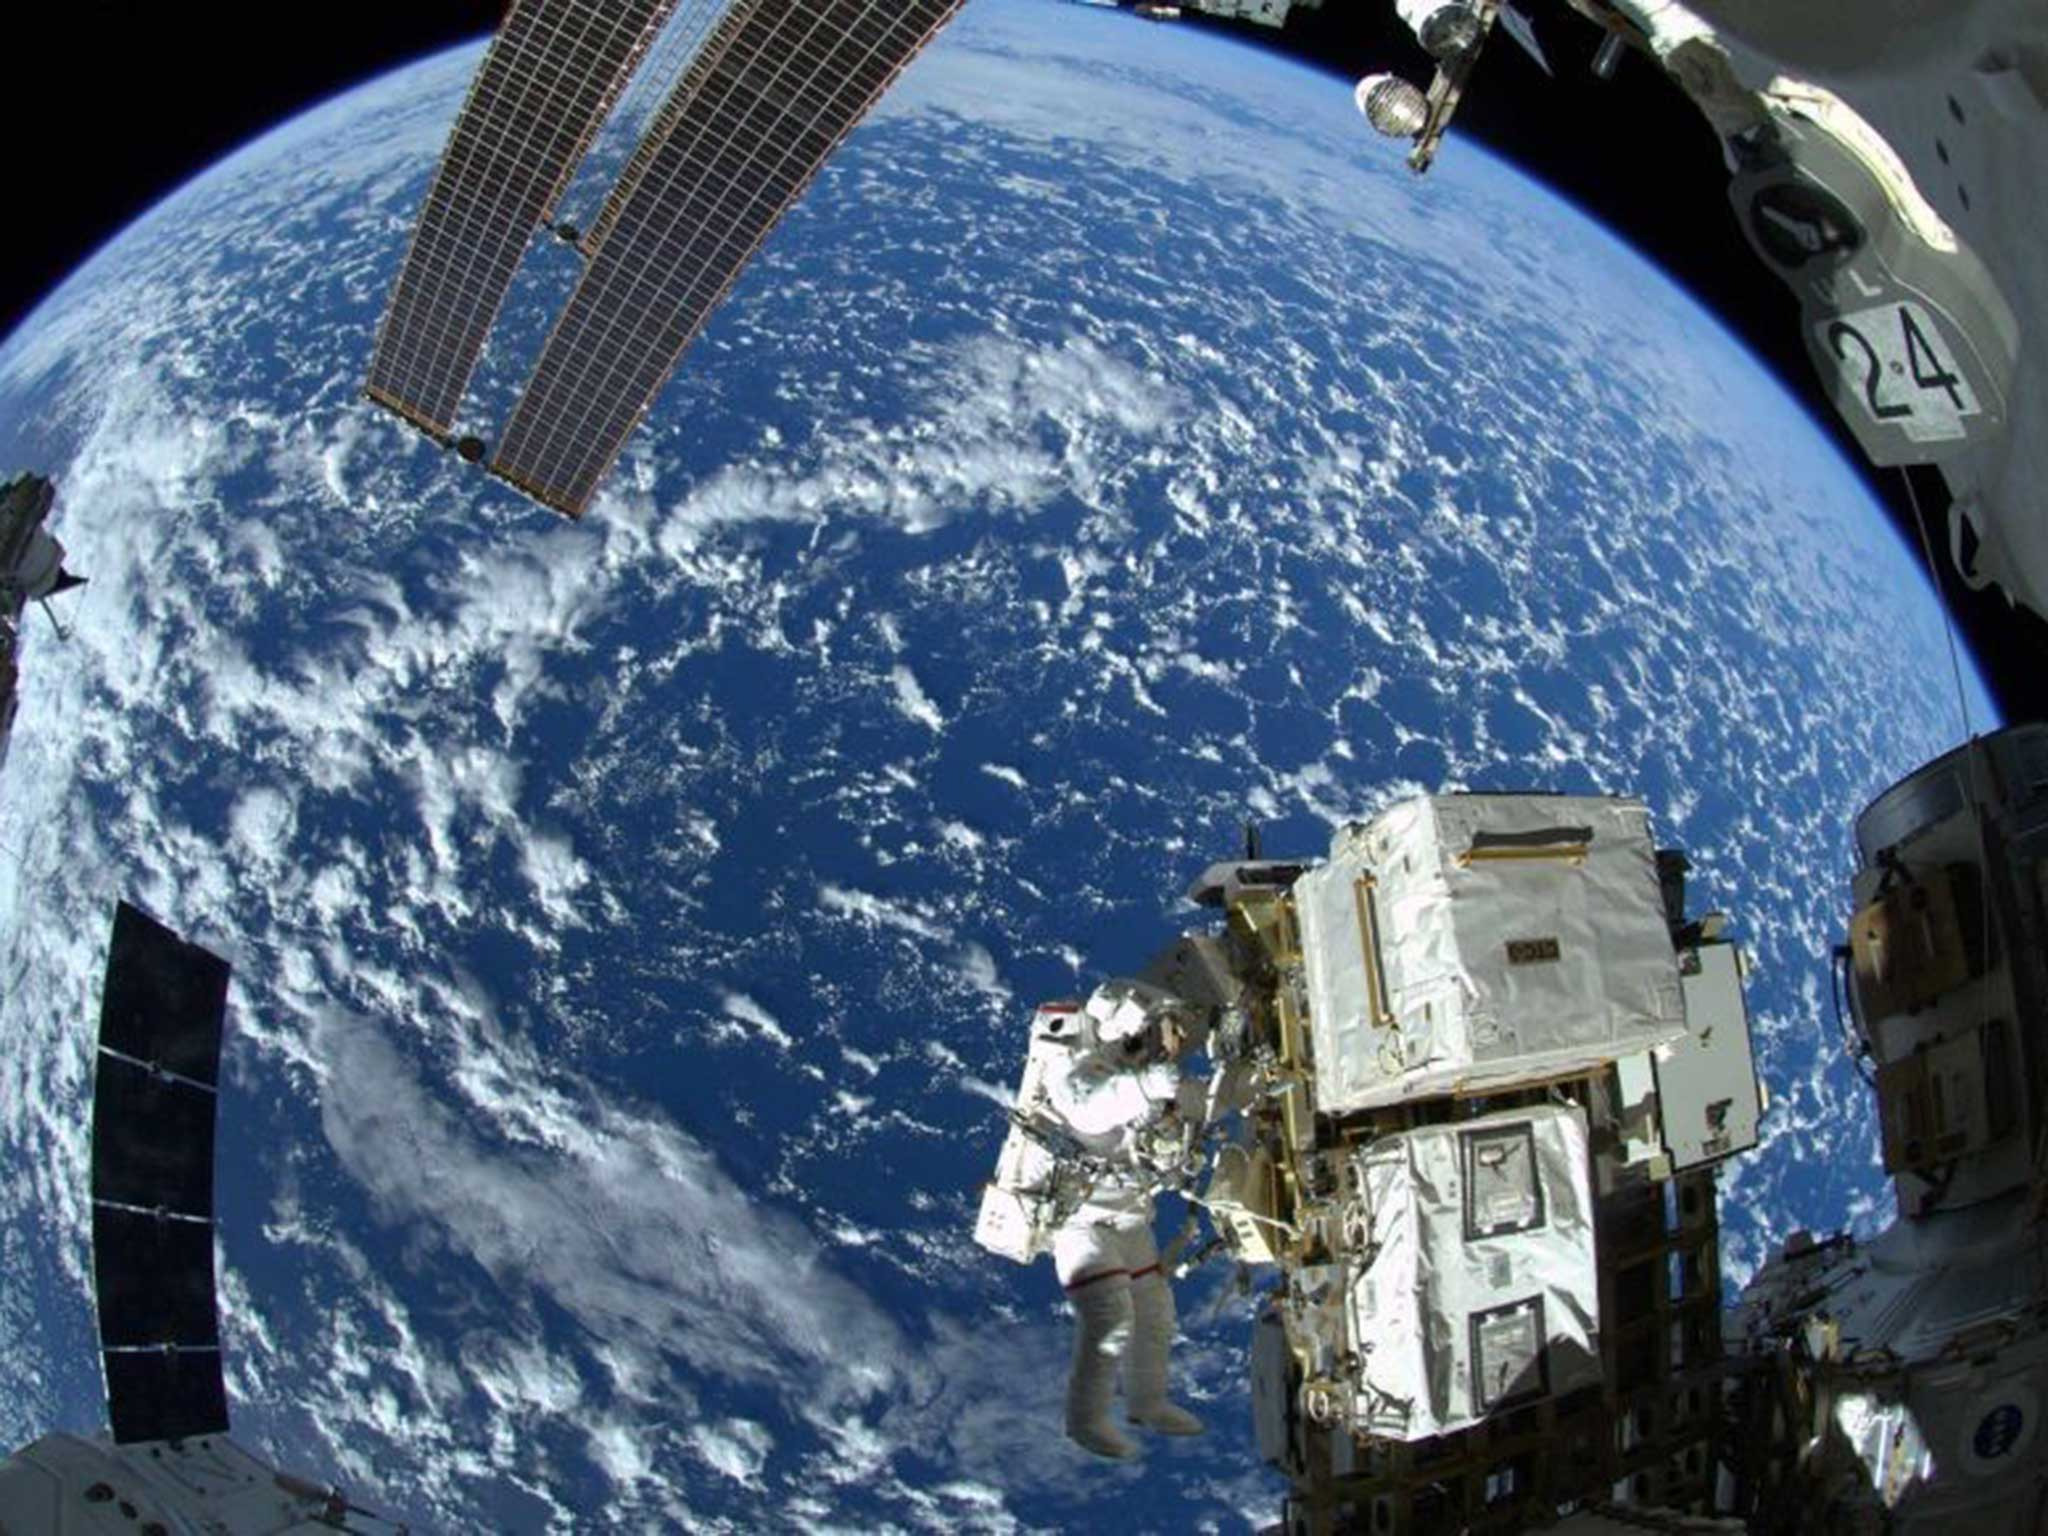 Morocco: ISS visible this Sunday with the naked eye